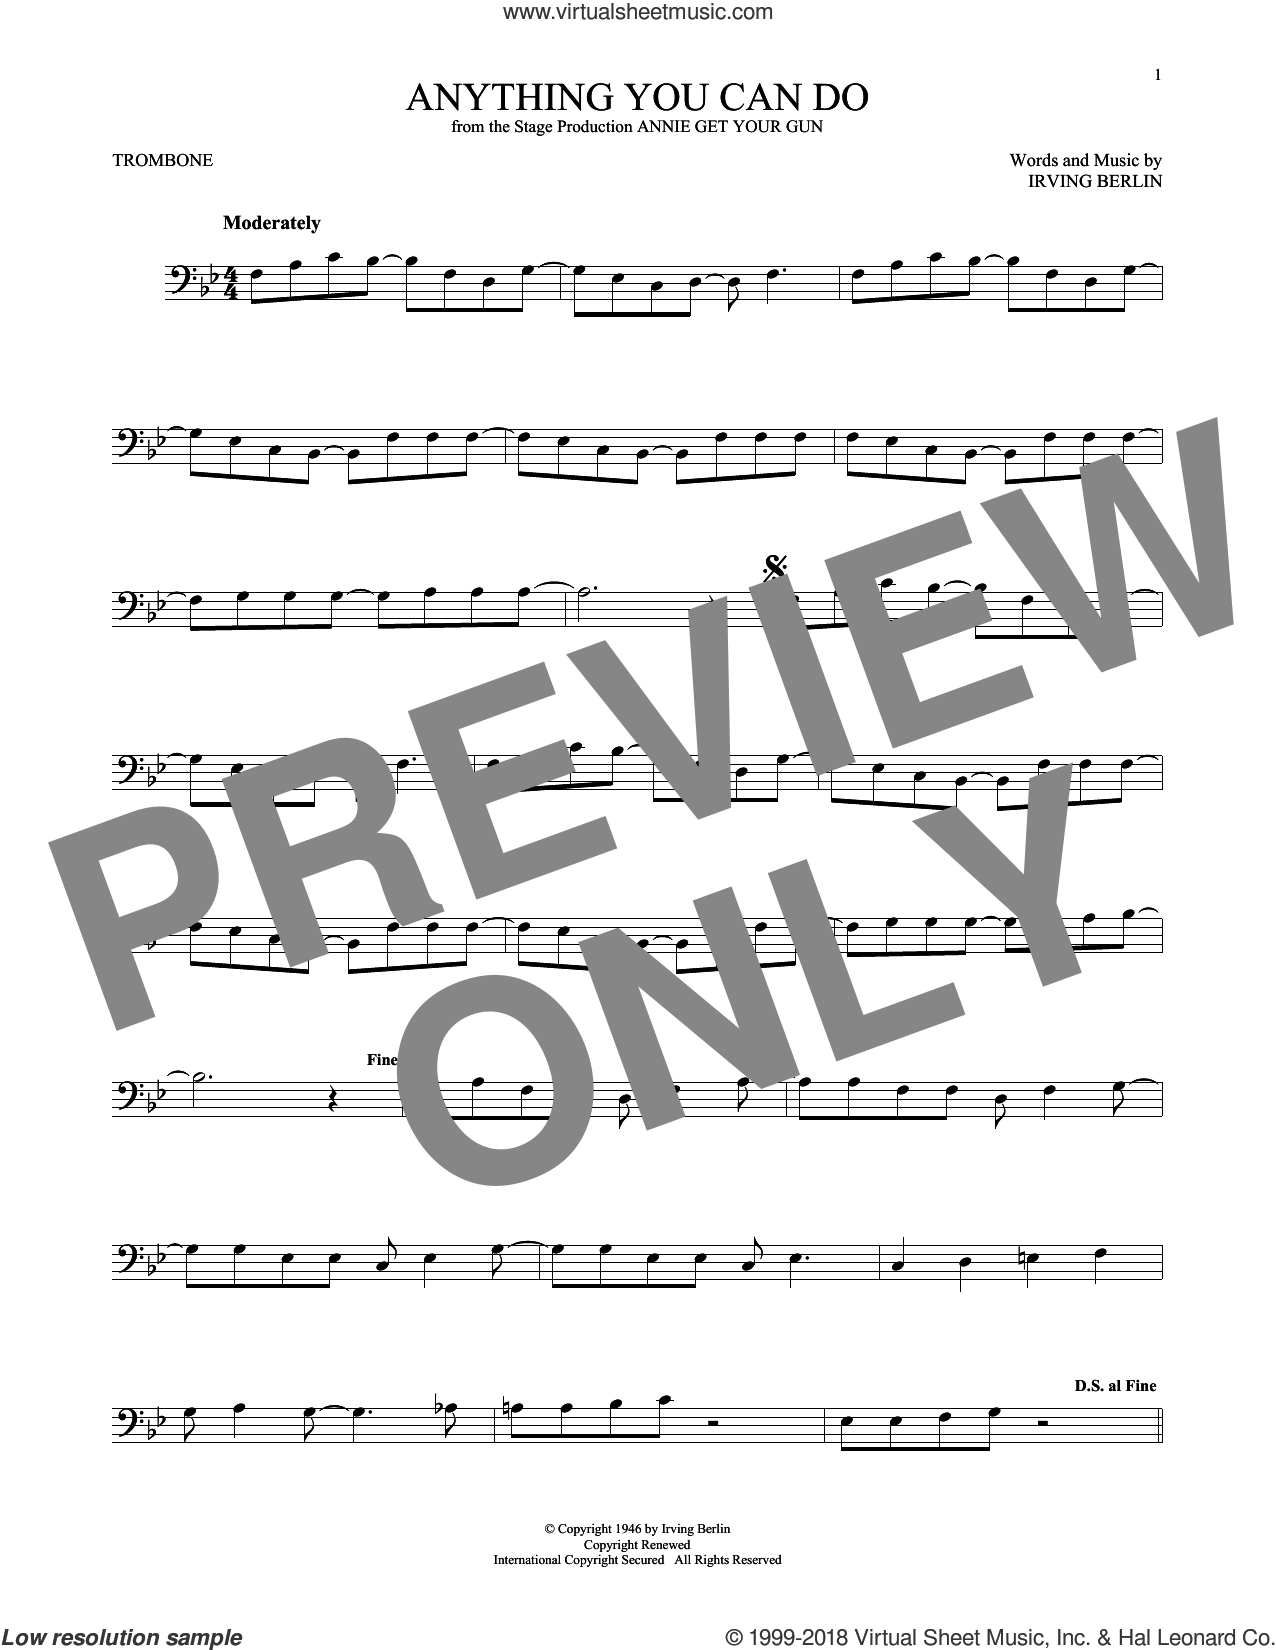 Anything You Can Do sheet music for trombone solo by Irving Berlin, intermediate skill level